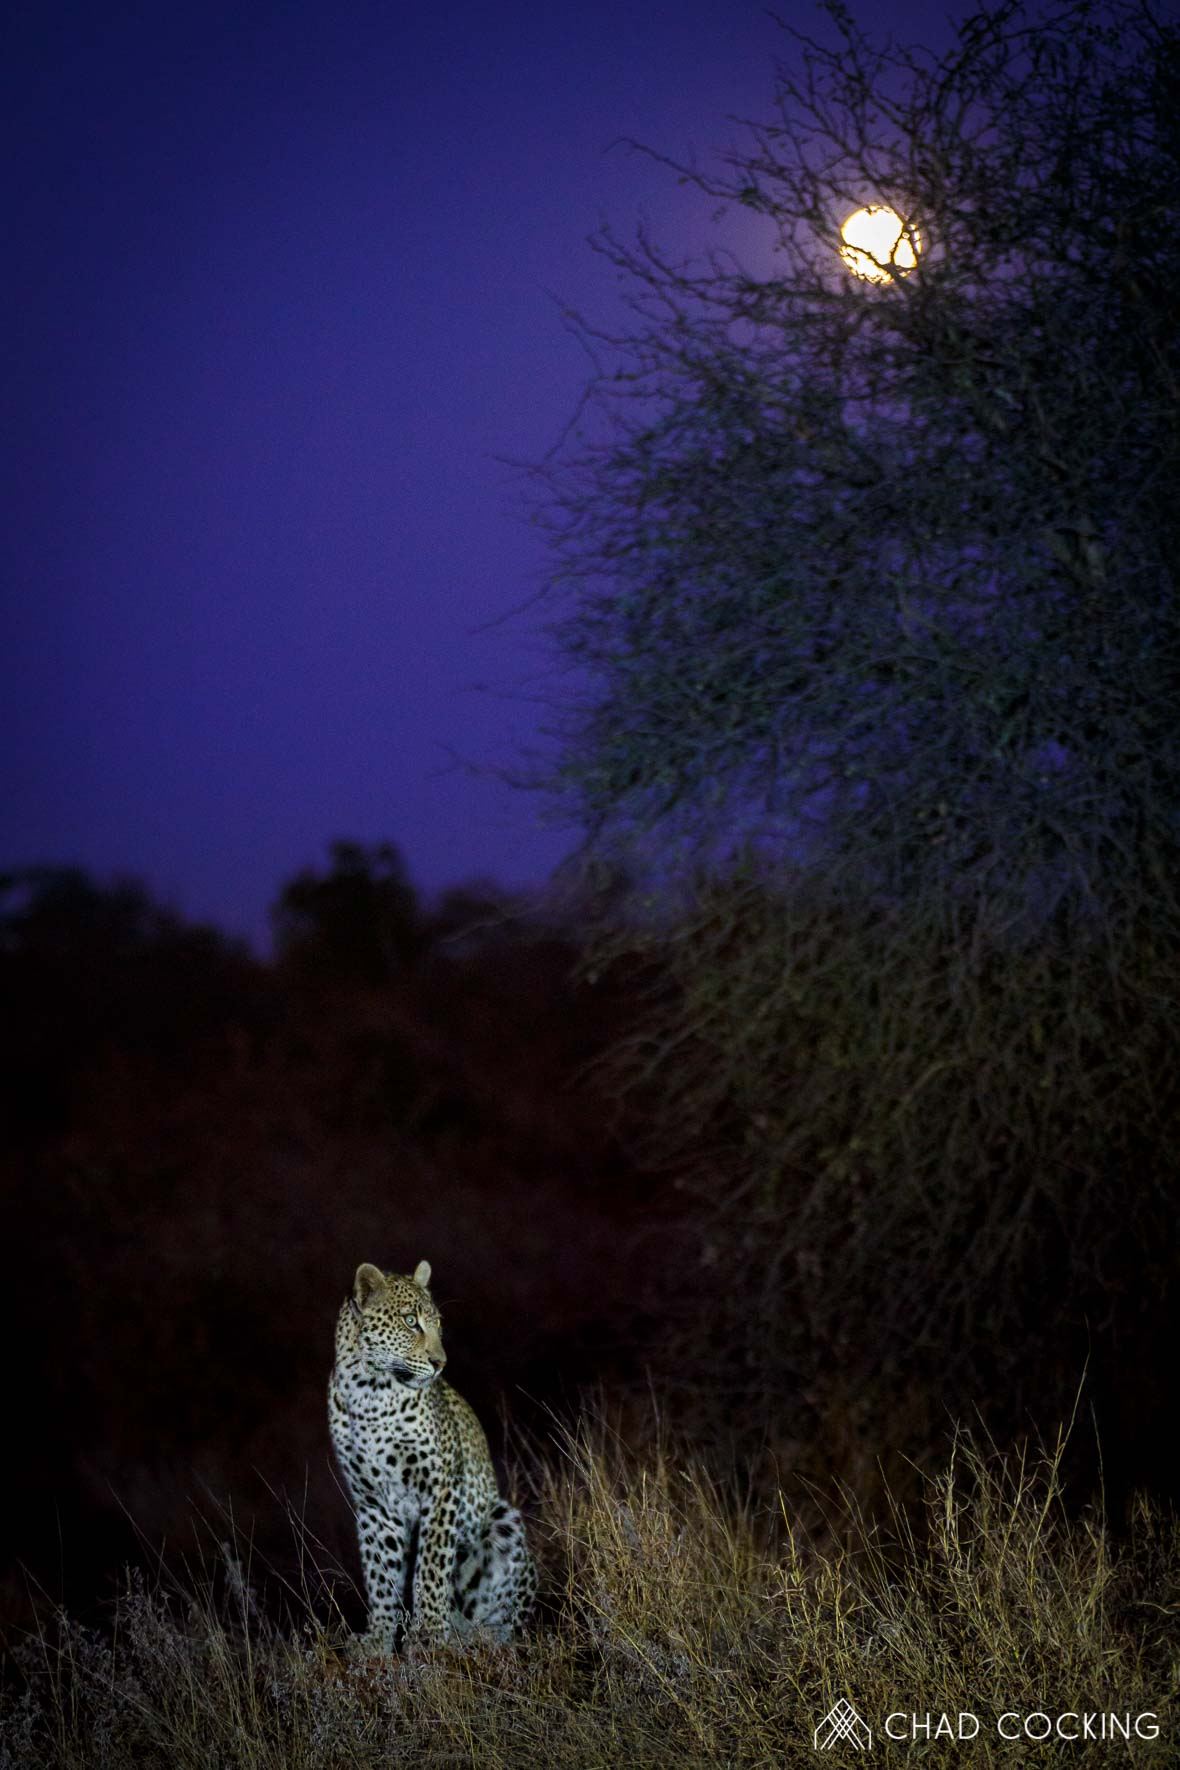 Photo credit: Chad Cocking | Leopard under the moon at Tanda Tula in the Timbavati Game Reserve, South Africa.